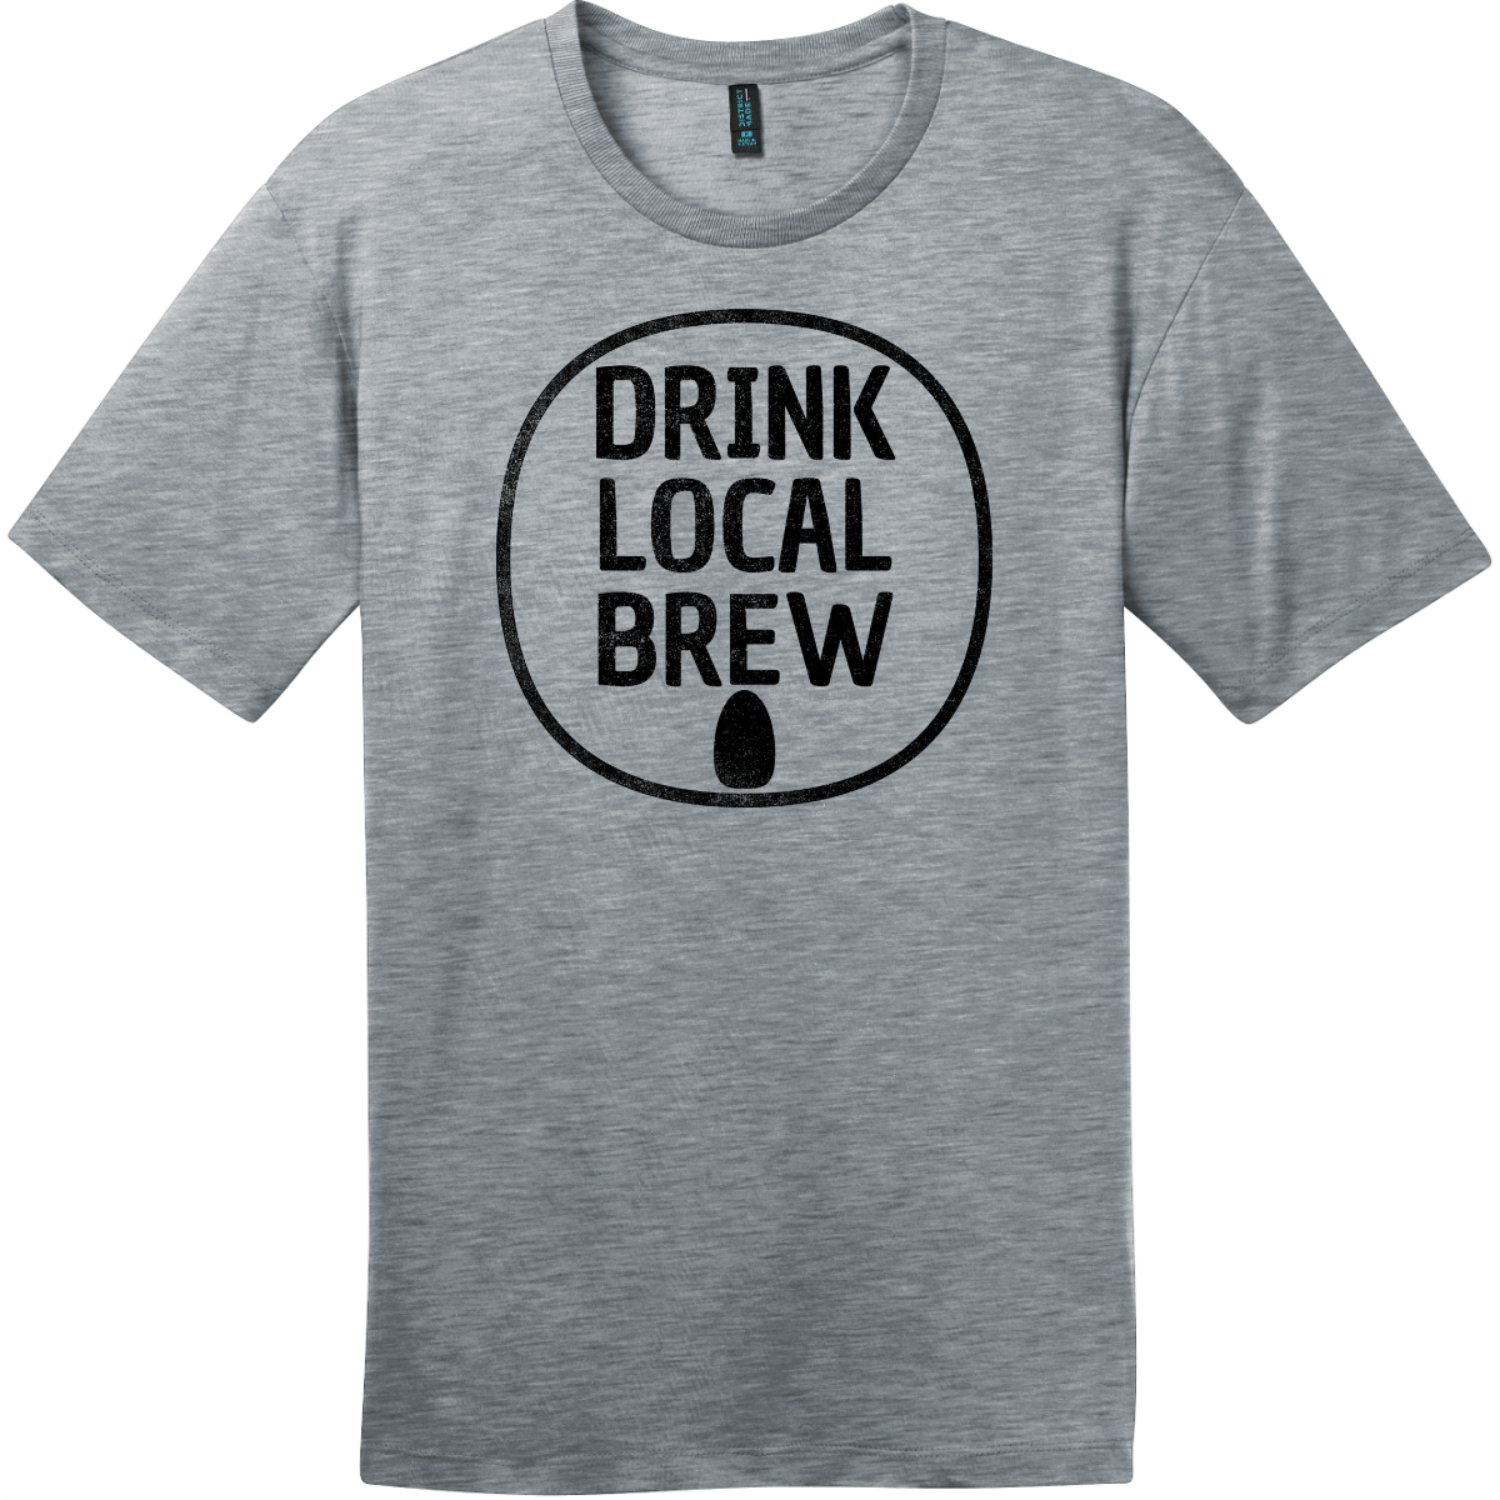 Drink Local Brew Can T-Shirt Heathered Steel District Perfect Weight Tee DT104